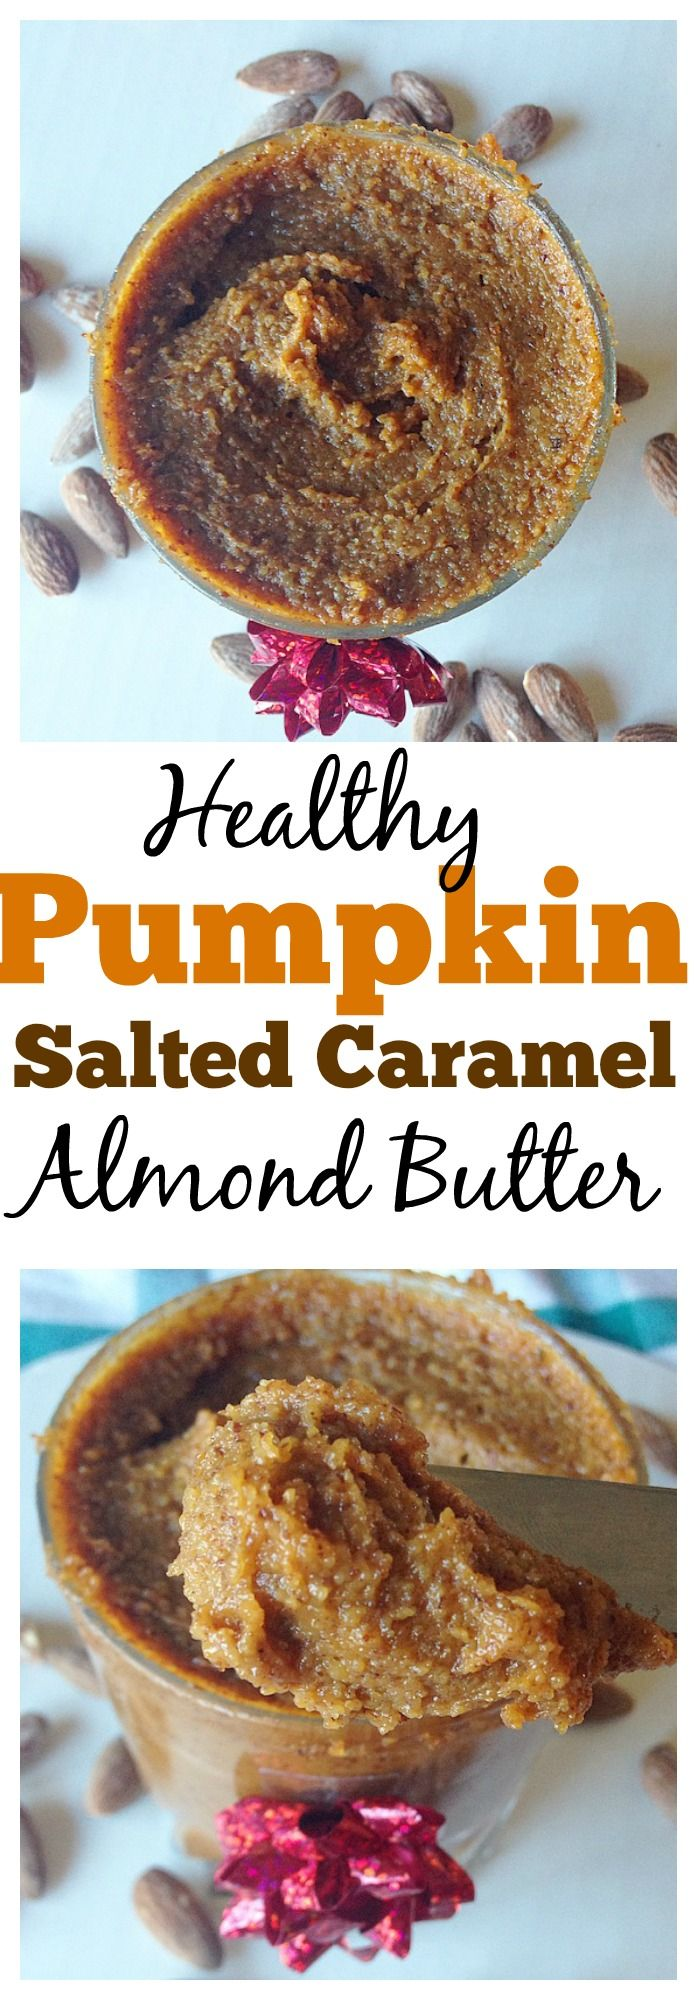 This #healthy Pumpkin Salted Caramel Almond Butter does not only tasty gourmet and heavenly, but its also so darn easy to make! You'll be amazed at this finger-lickin' nut butter that you'll have a hard time eating it! One of my most pinned recipes! #vegan #paleo #pumpkin